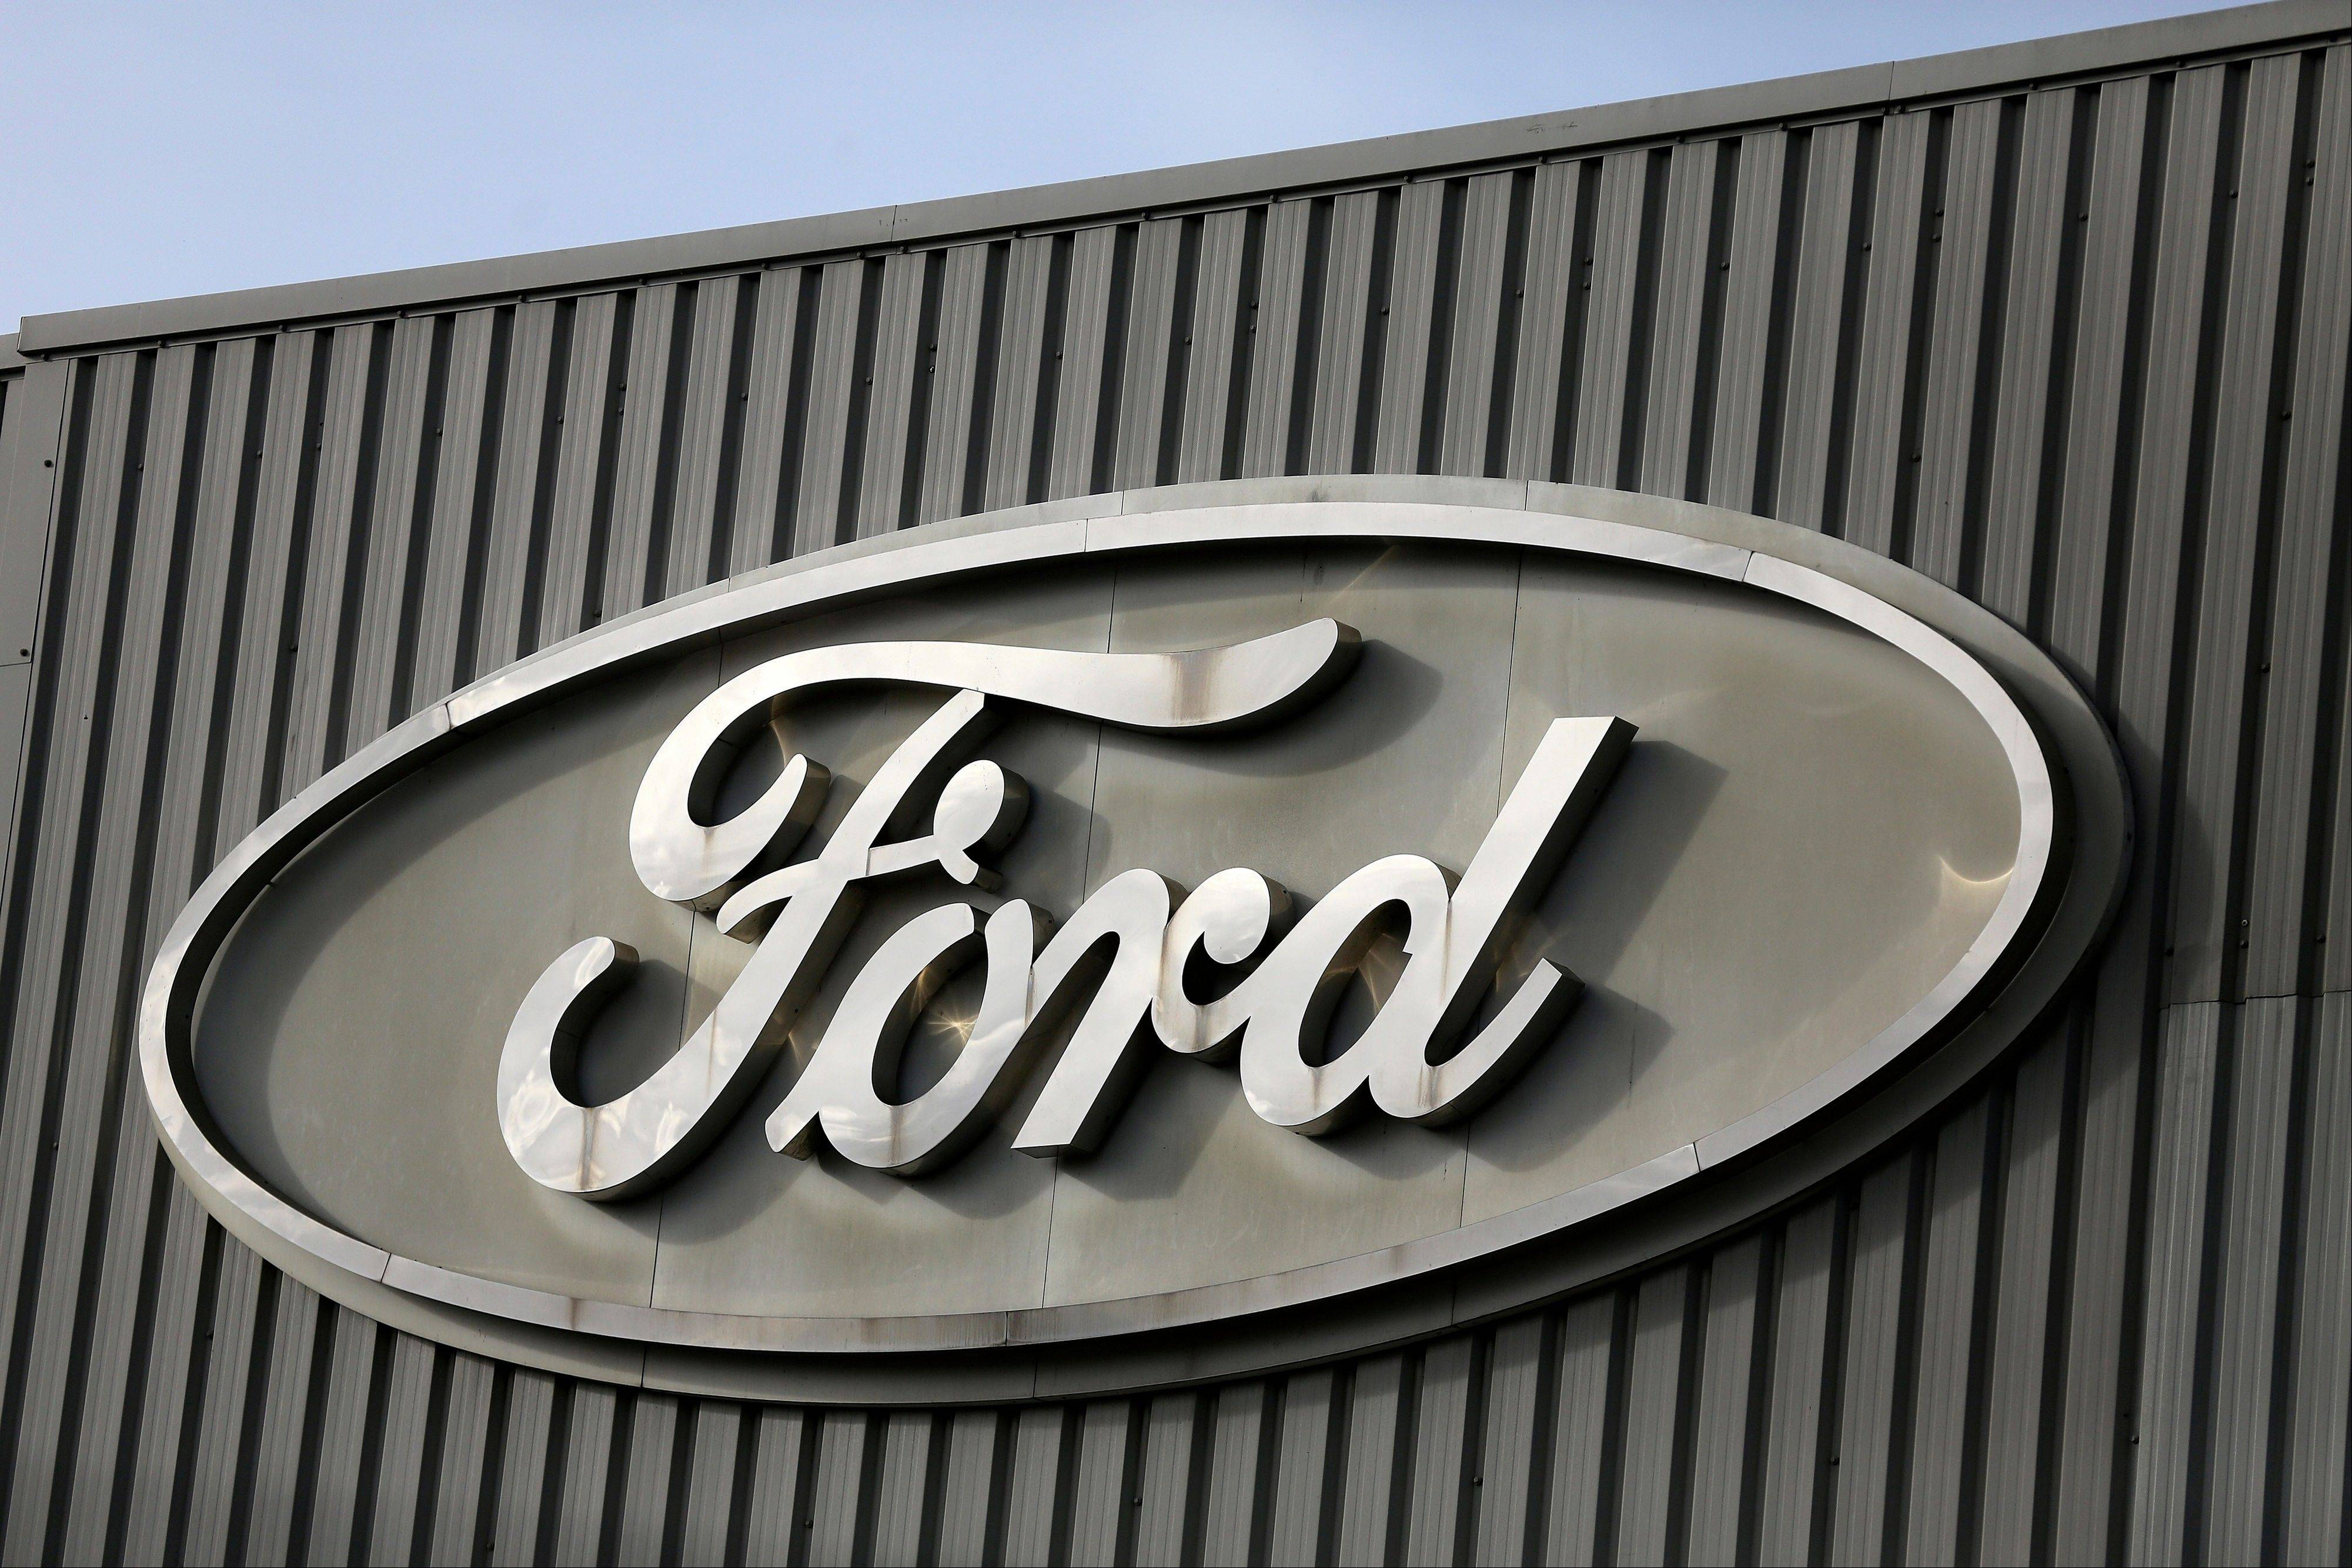 Ford Motor Co. says its net income dropped 1 percent to $1.63 billion in the third quarter as European losses swamped record North American profits.